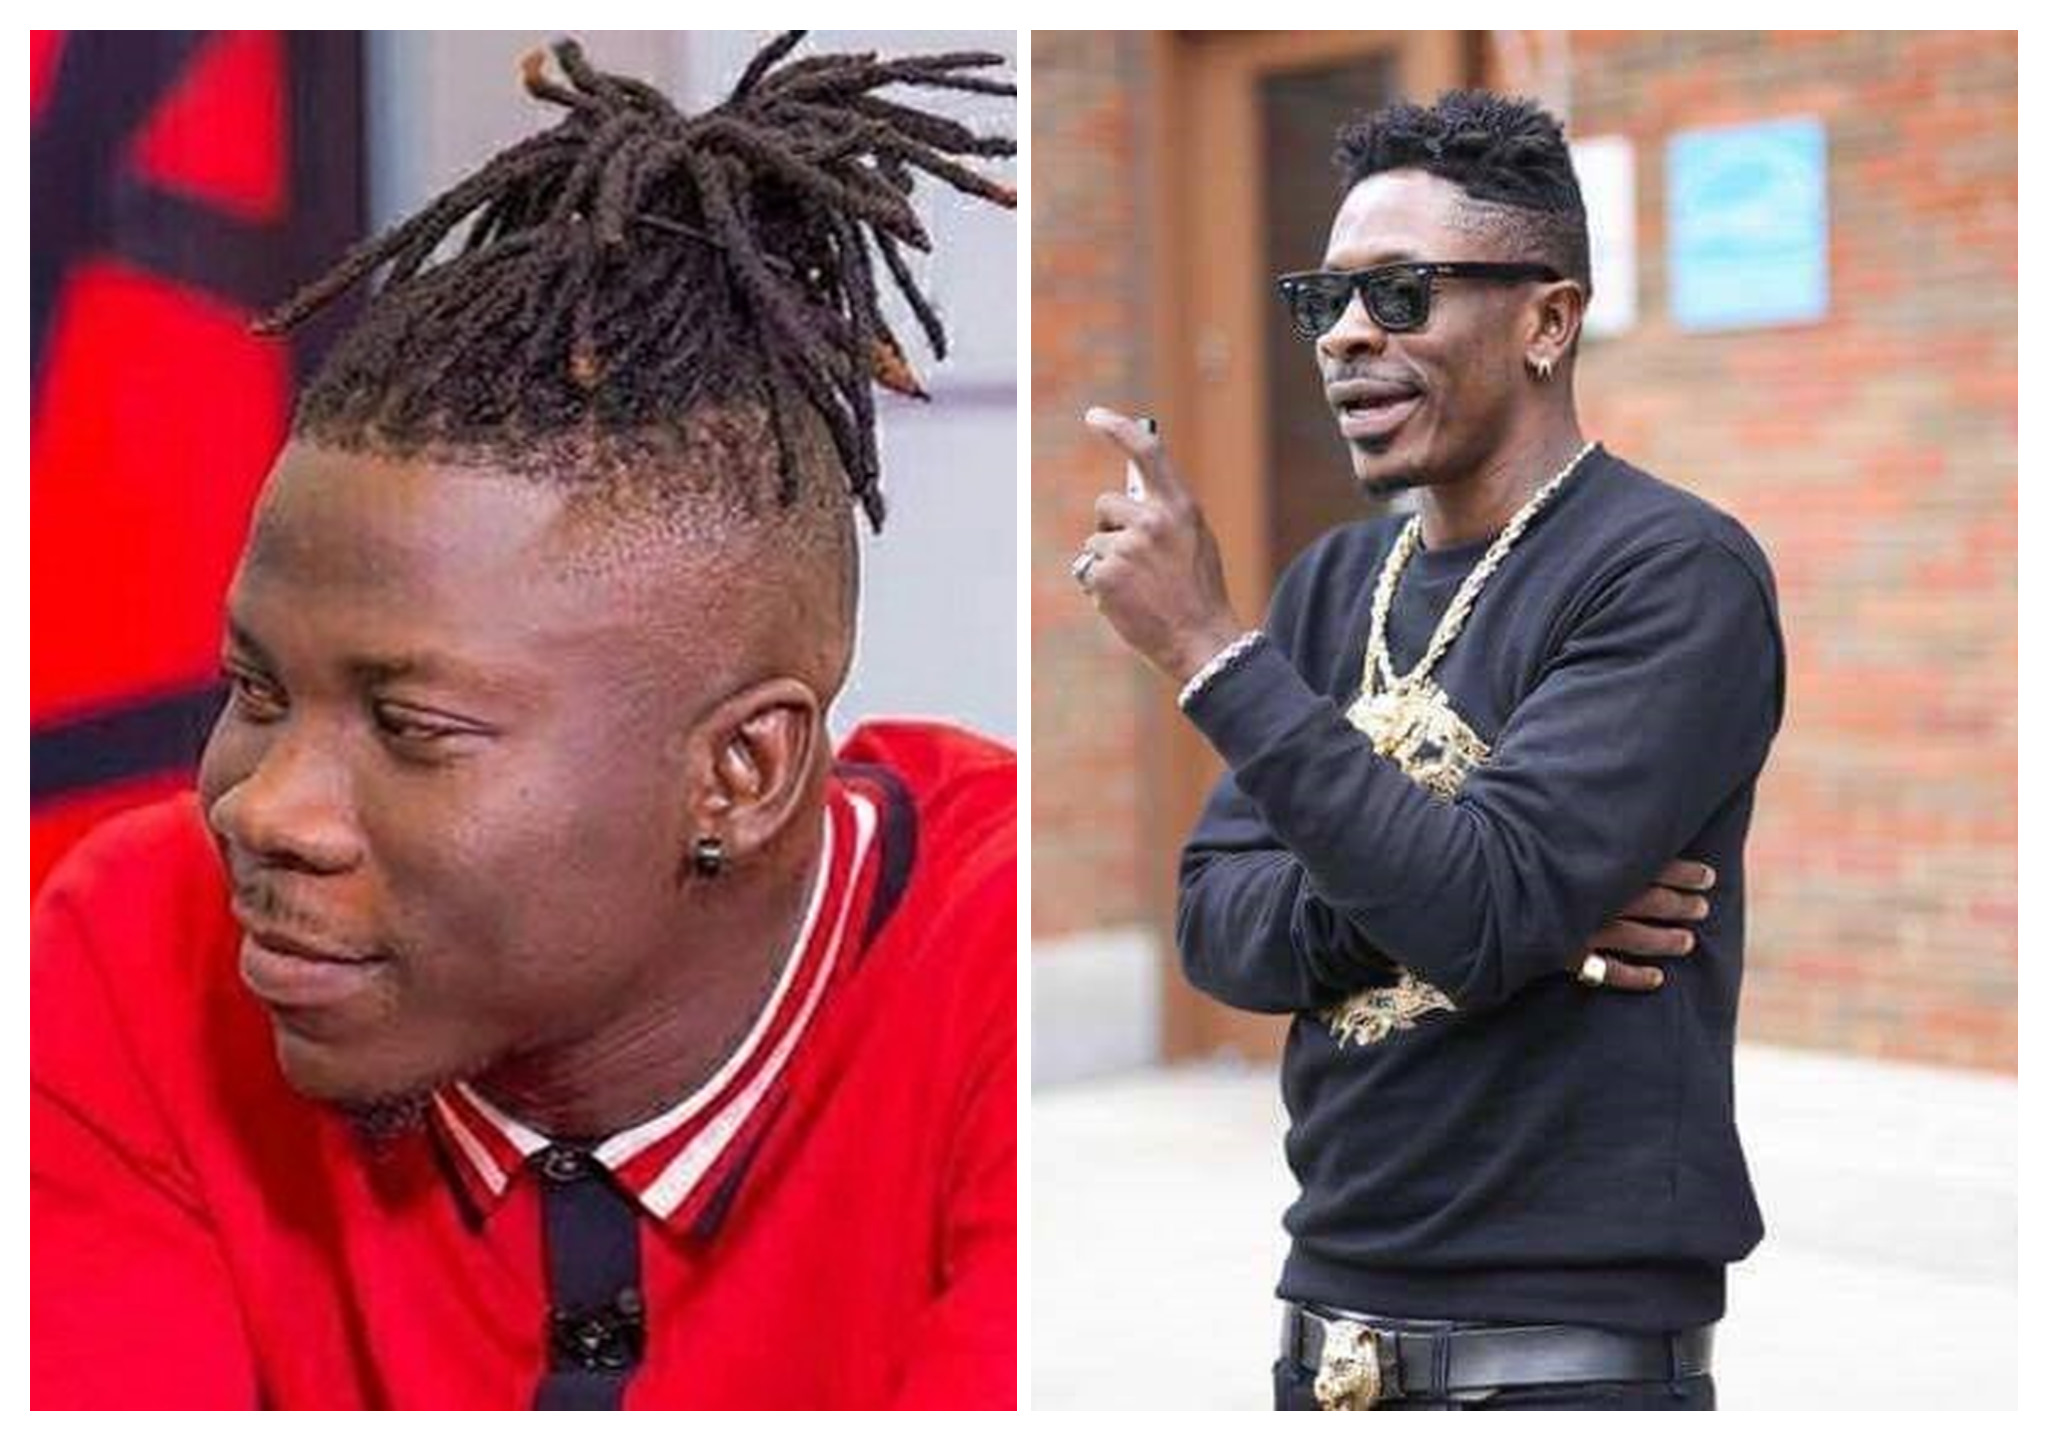 Shatta Wale, Stonebwoy And Samini To Headline Concert In December